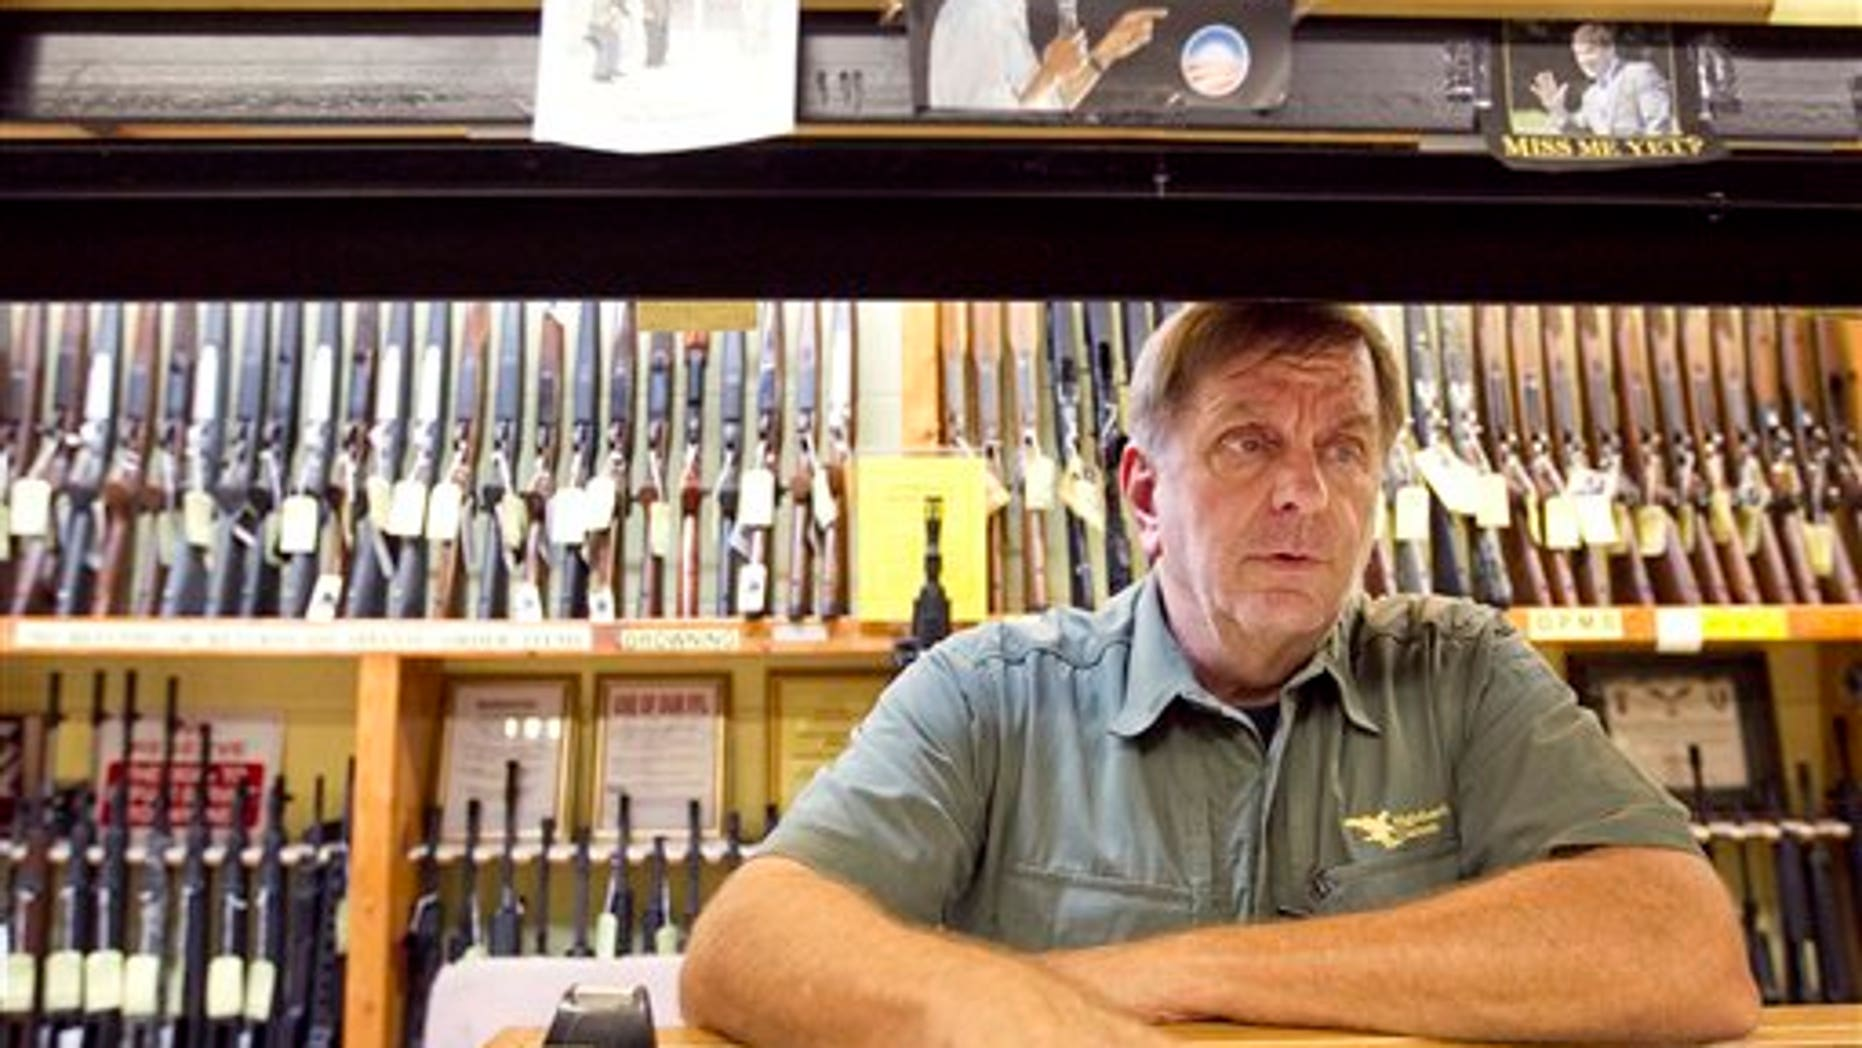 July 28: Greg Ebert, a part-time clerk at Guns Galore, speaks at the in Killeen, Texas shop.